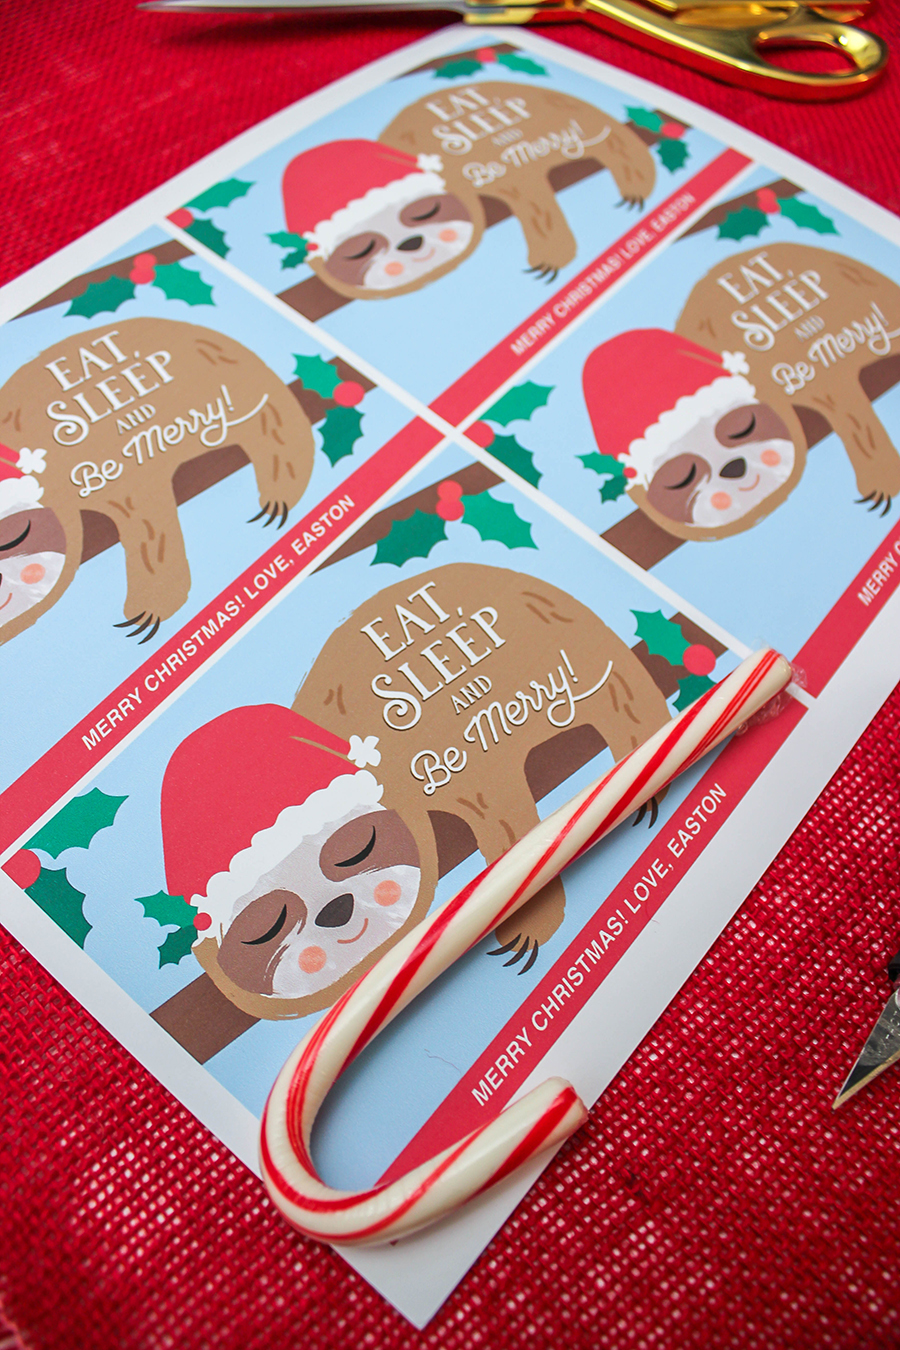 Christmas Sloth Gift Ideas, slow ho ho, eat sleep and be merry, christmas sloth, sloth, classroom gifts, christmas gifts, free printables, Just Add Confetti, candy cane, sloth stuffed animal, sloth plush, sloth candy cane holder, etsy,